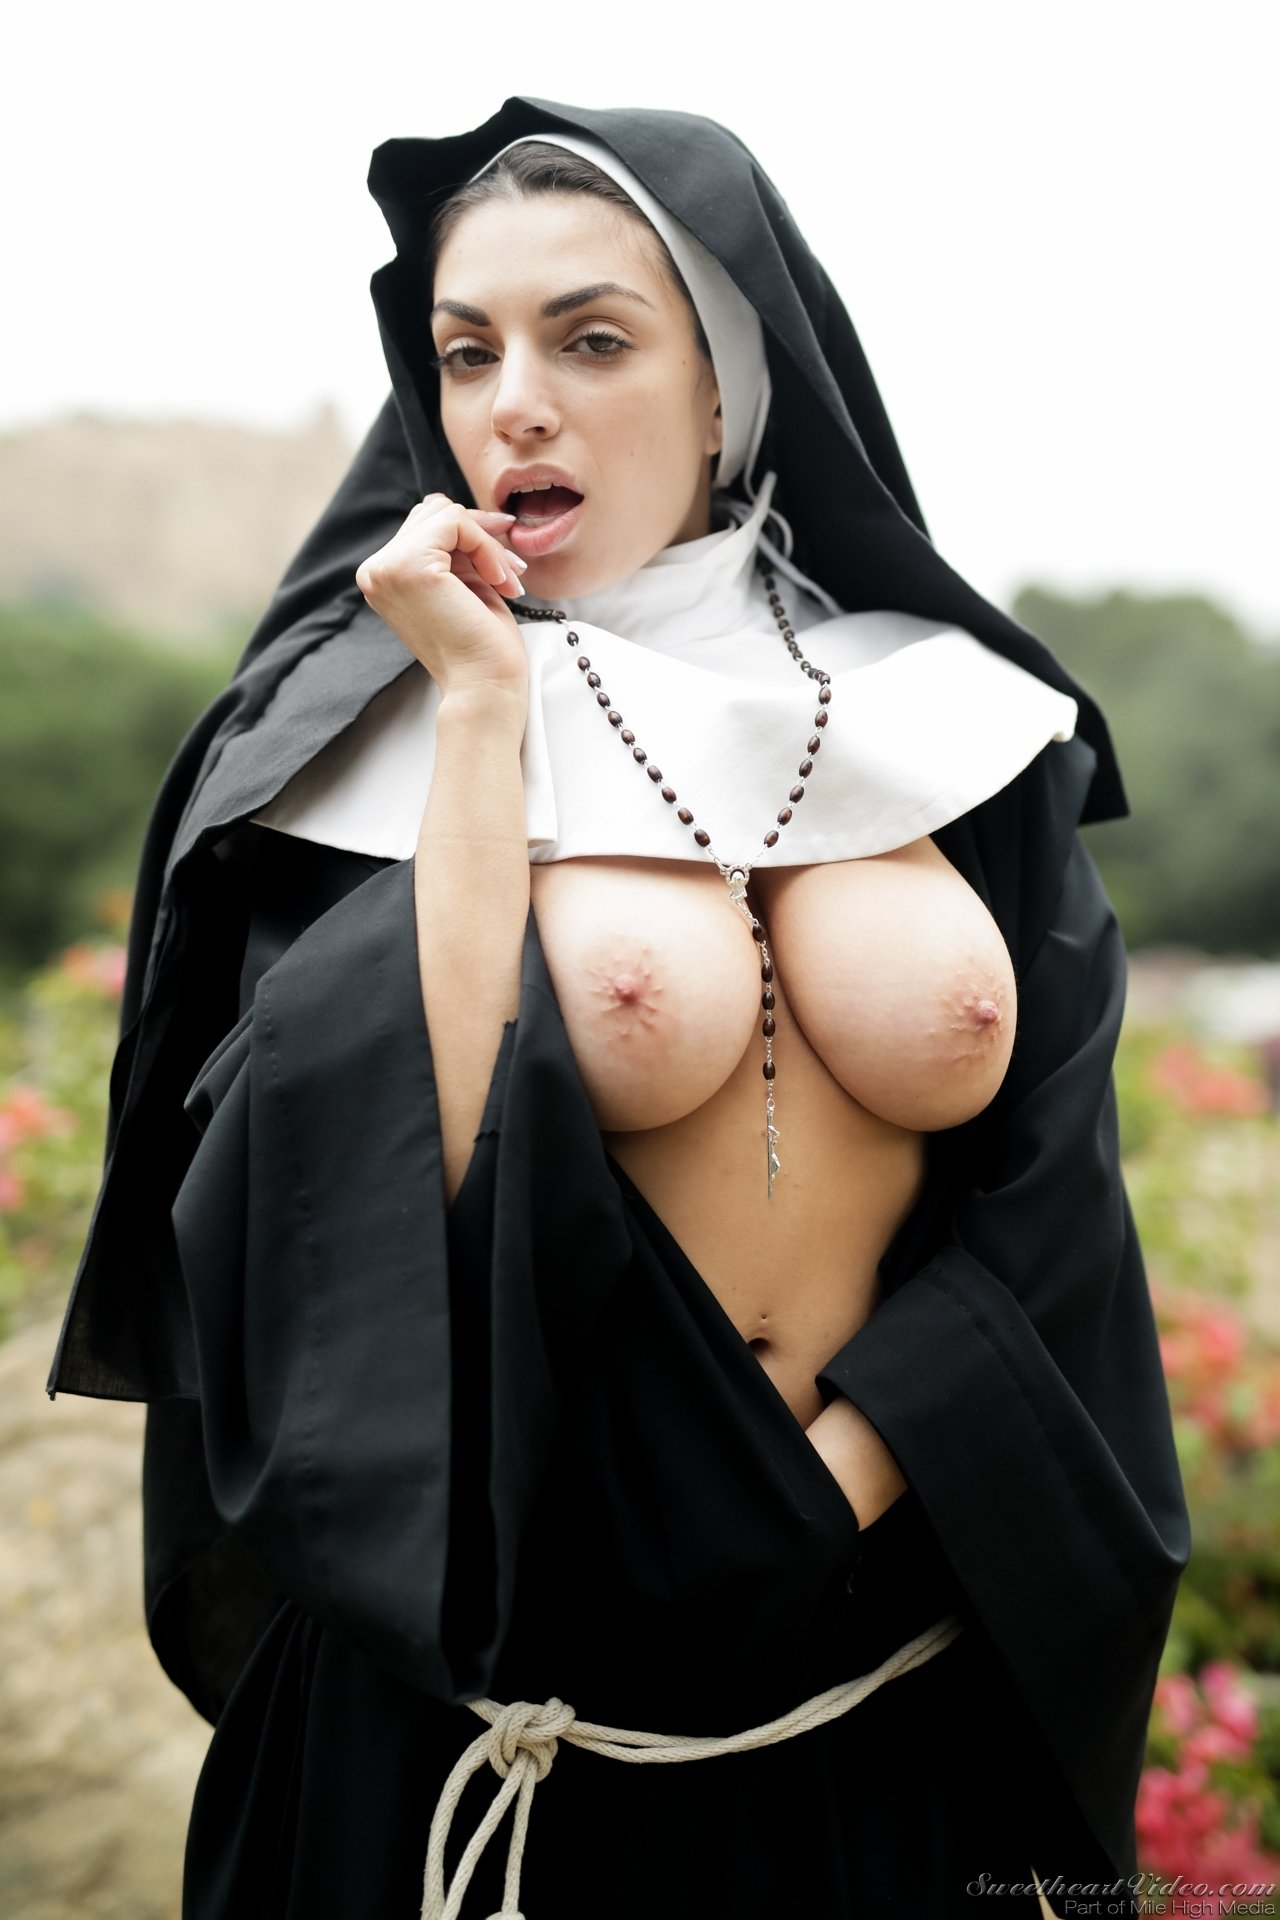 hot-nun-nude